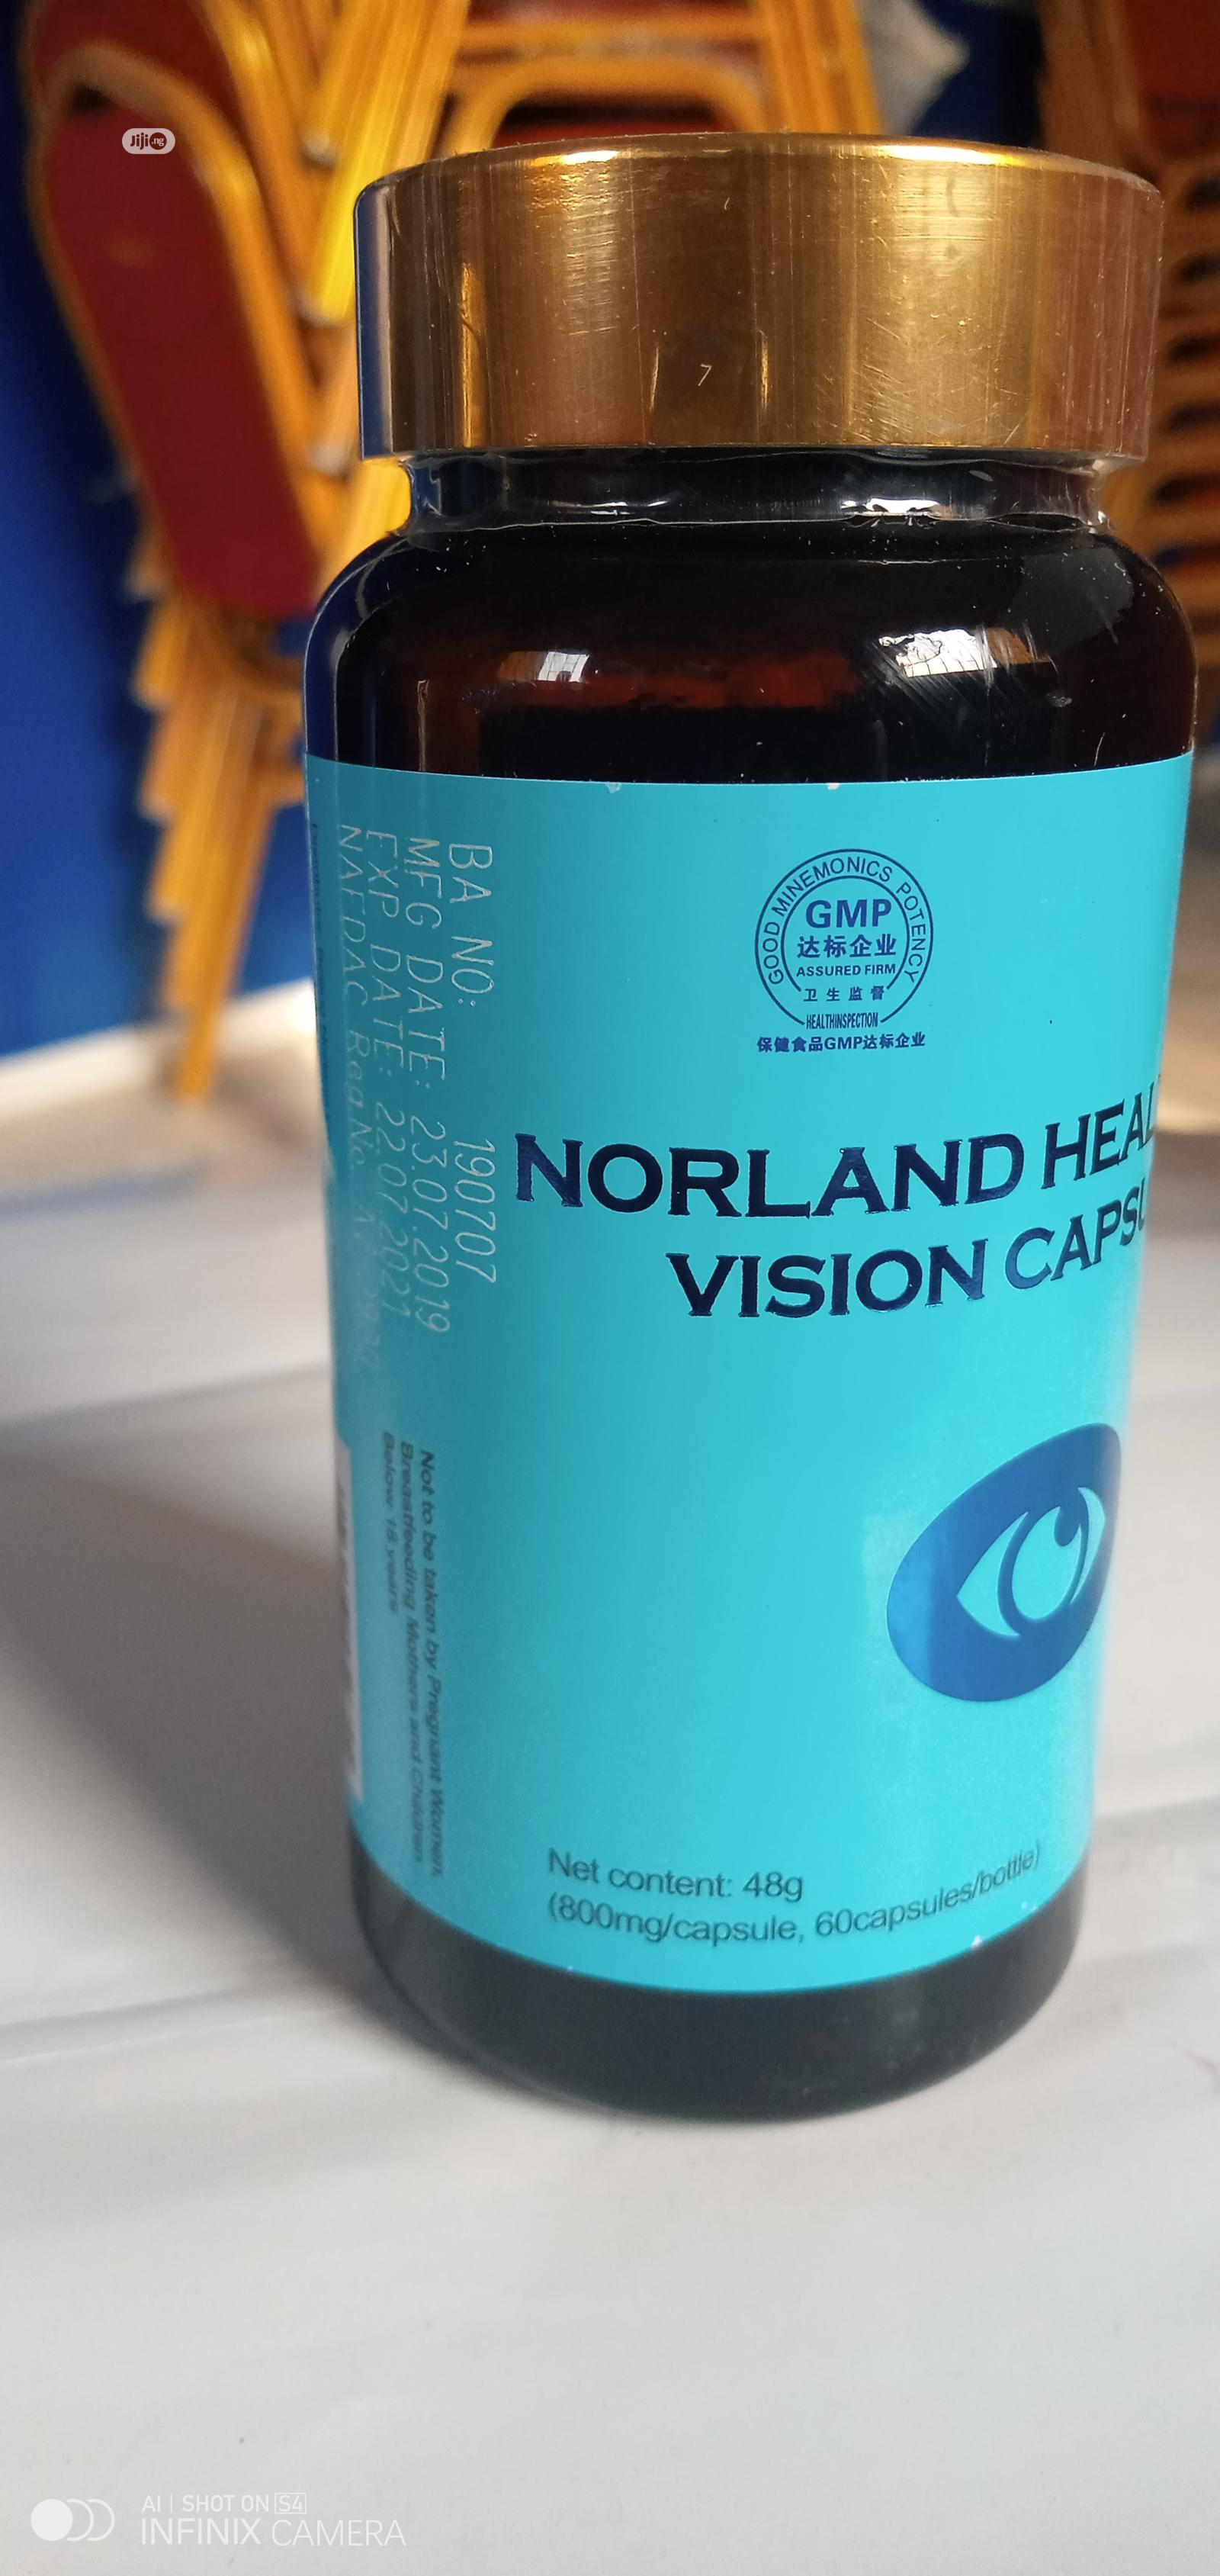 Cure to Glaucoma,Cataract, Blurred Vision